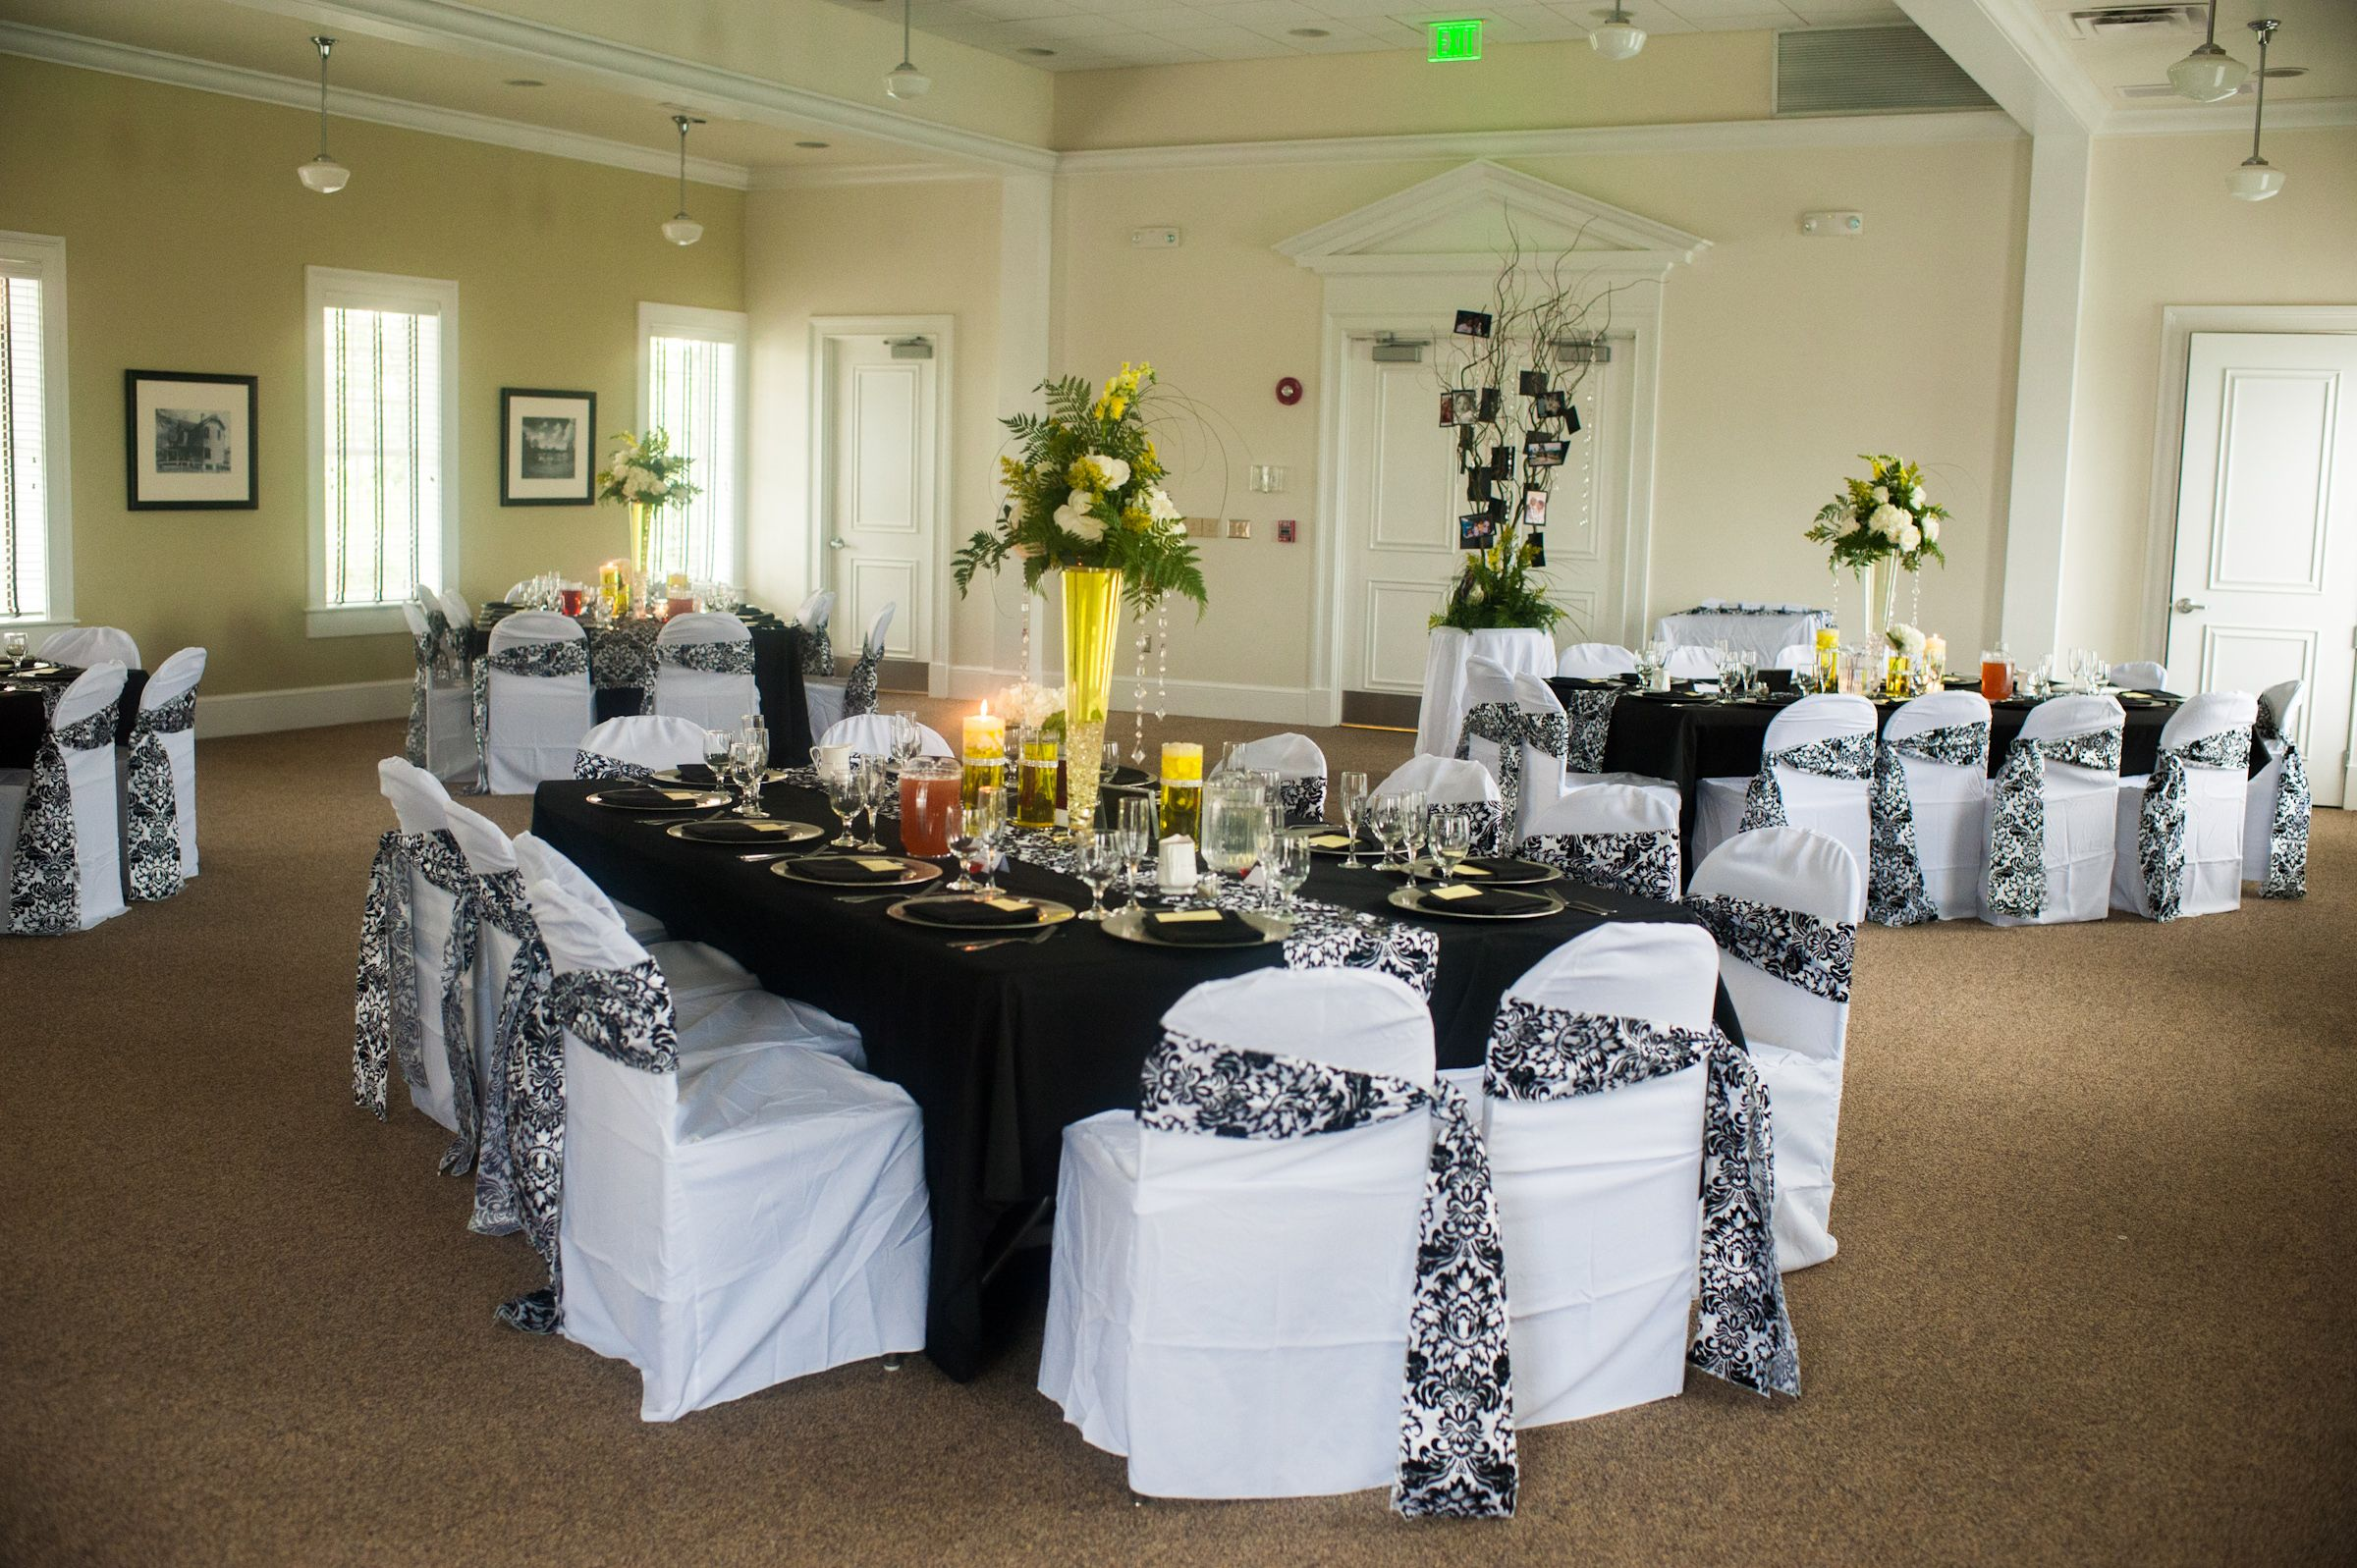 table chair rentals orlando stool meaning grace hopper hall baldwin park vow renewal fl